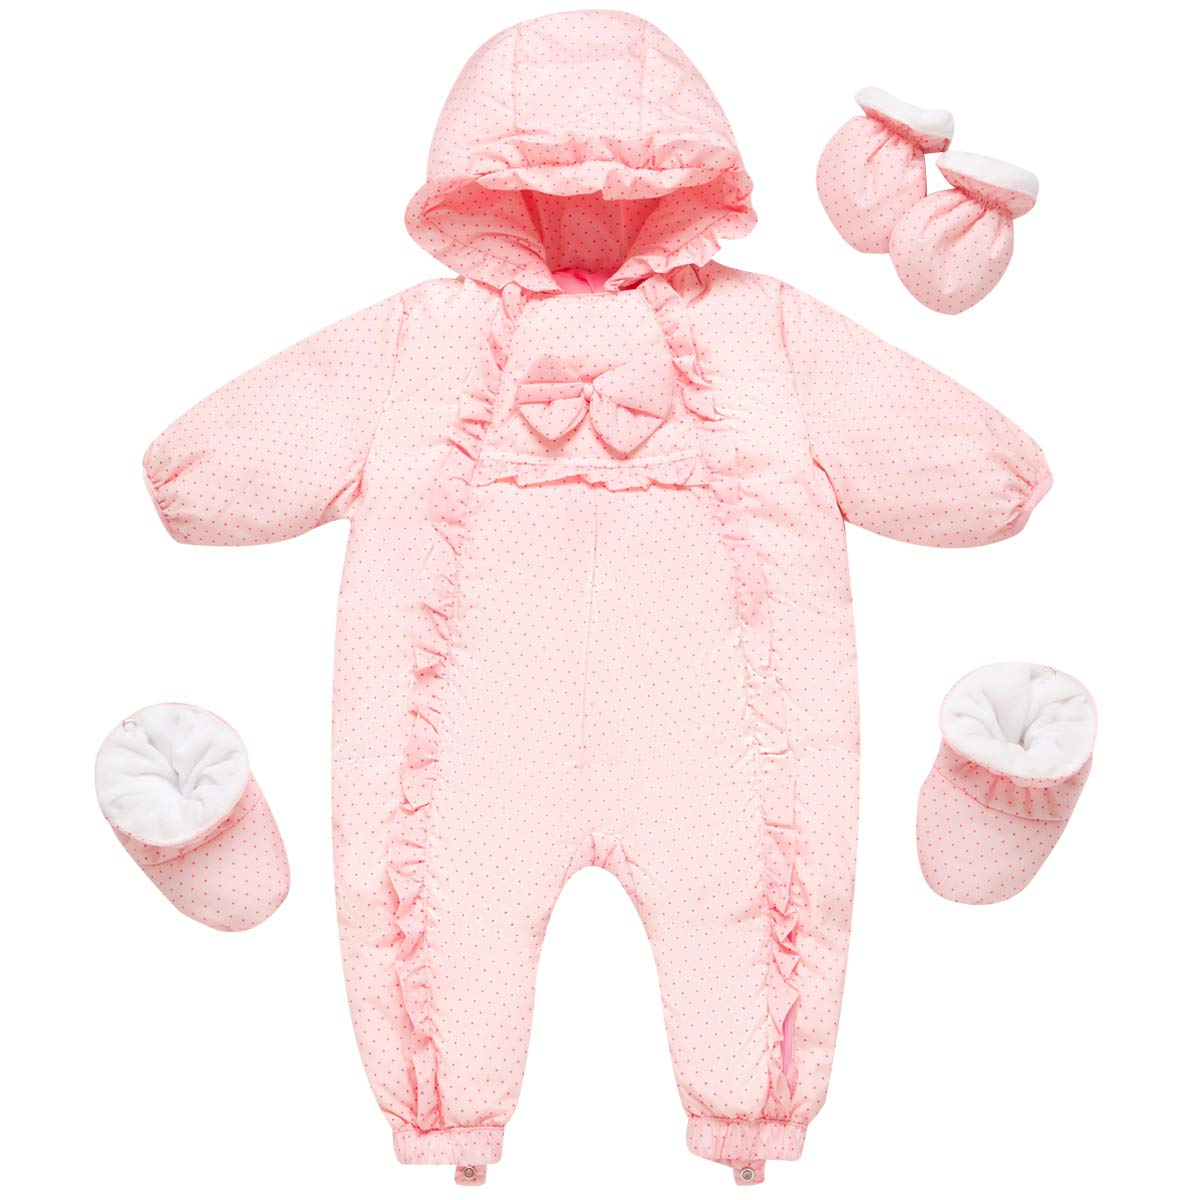 Famuka Baby Snowsuit Romper Outwear Winter Warm Outfit with Gloves